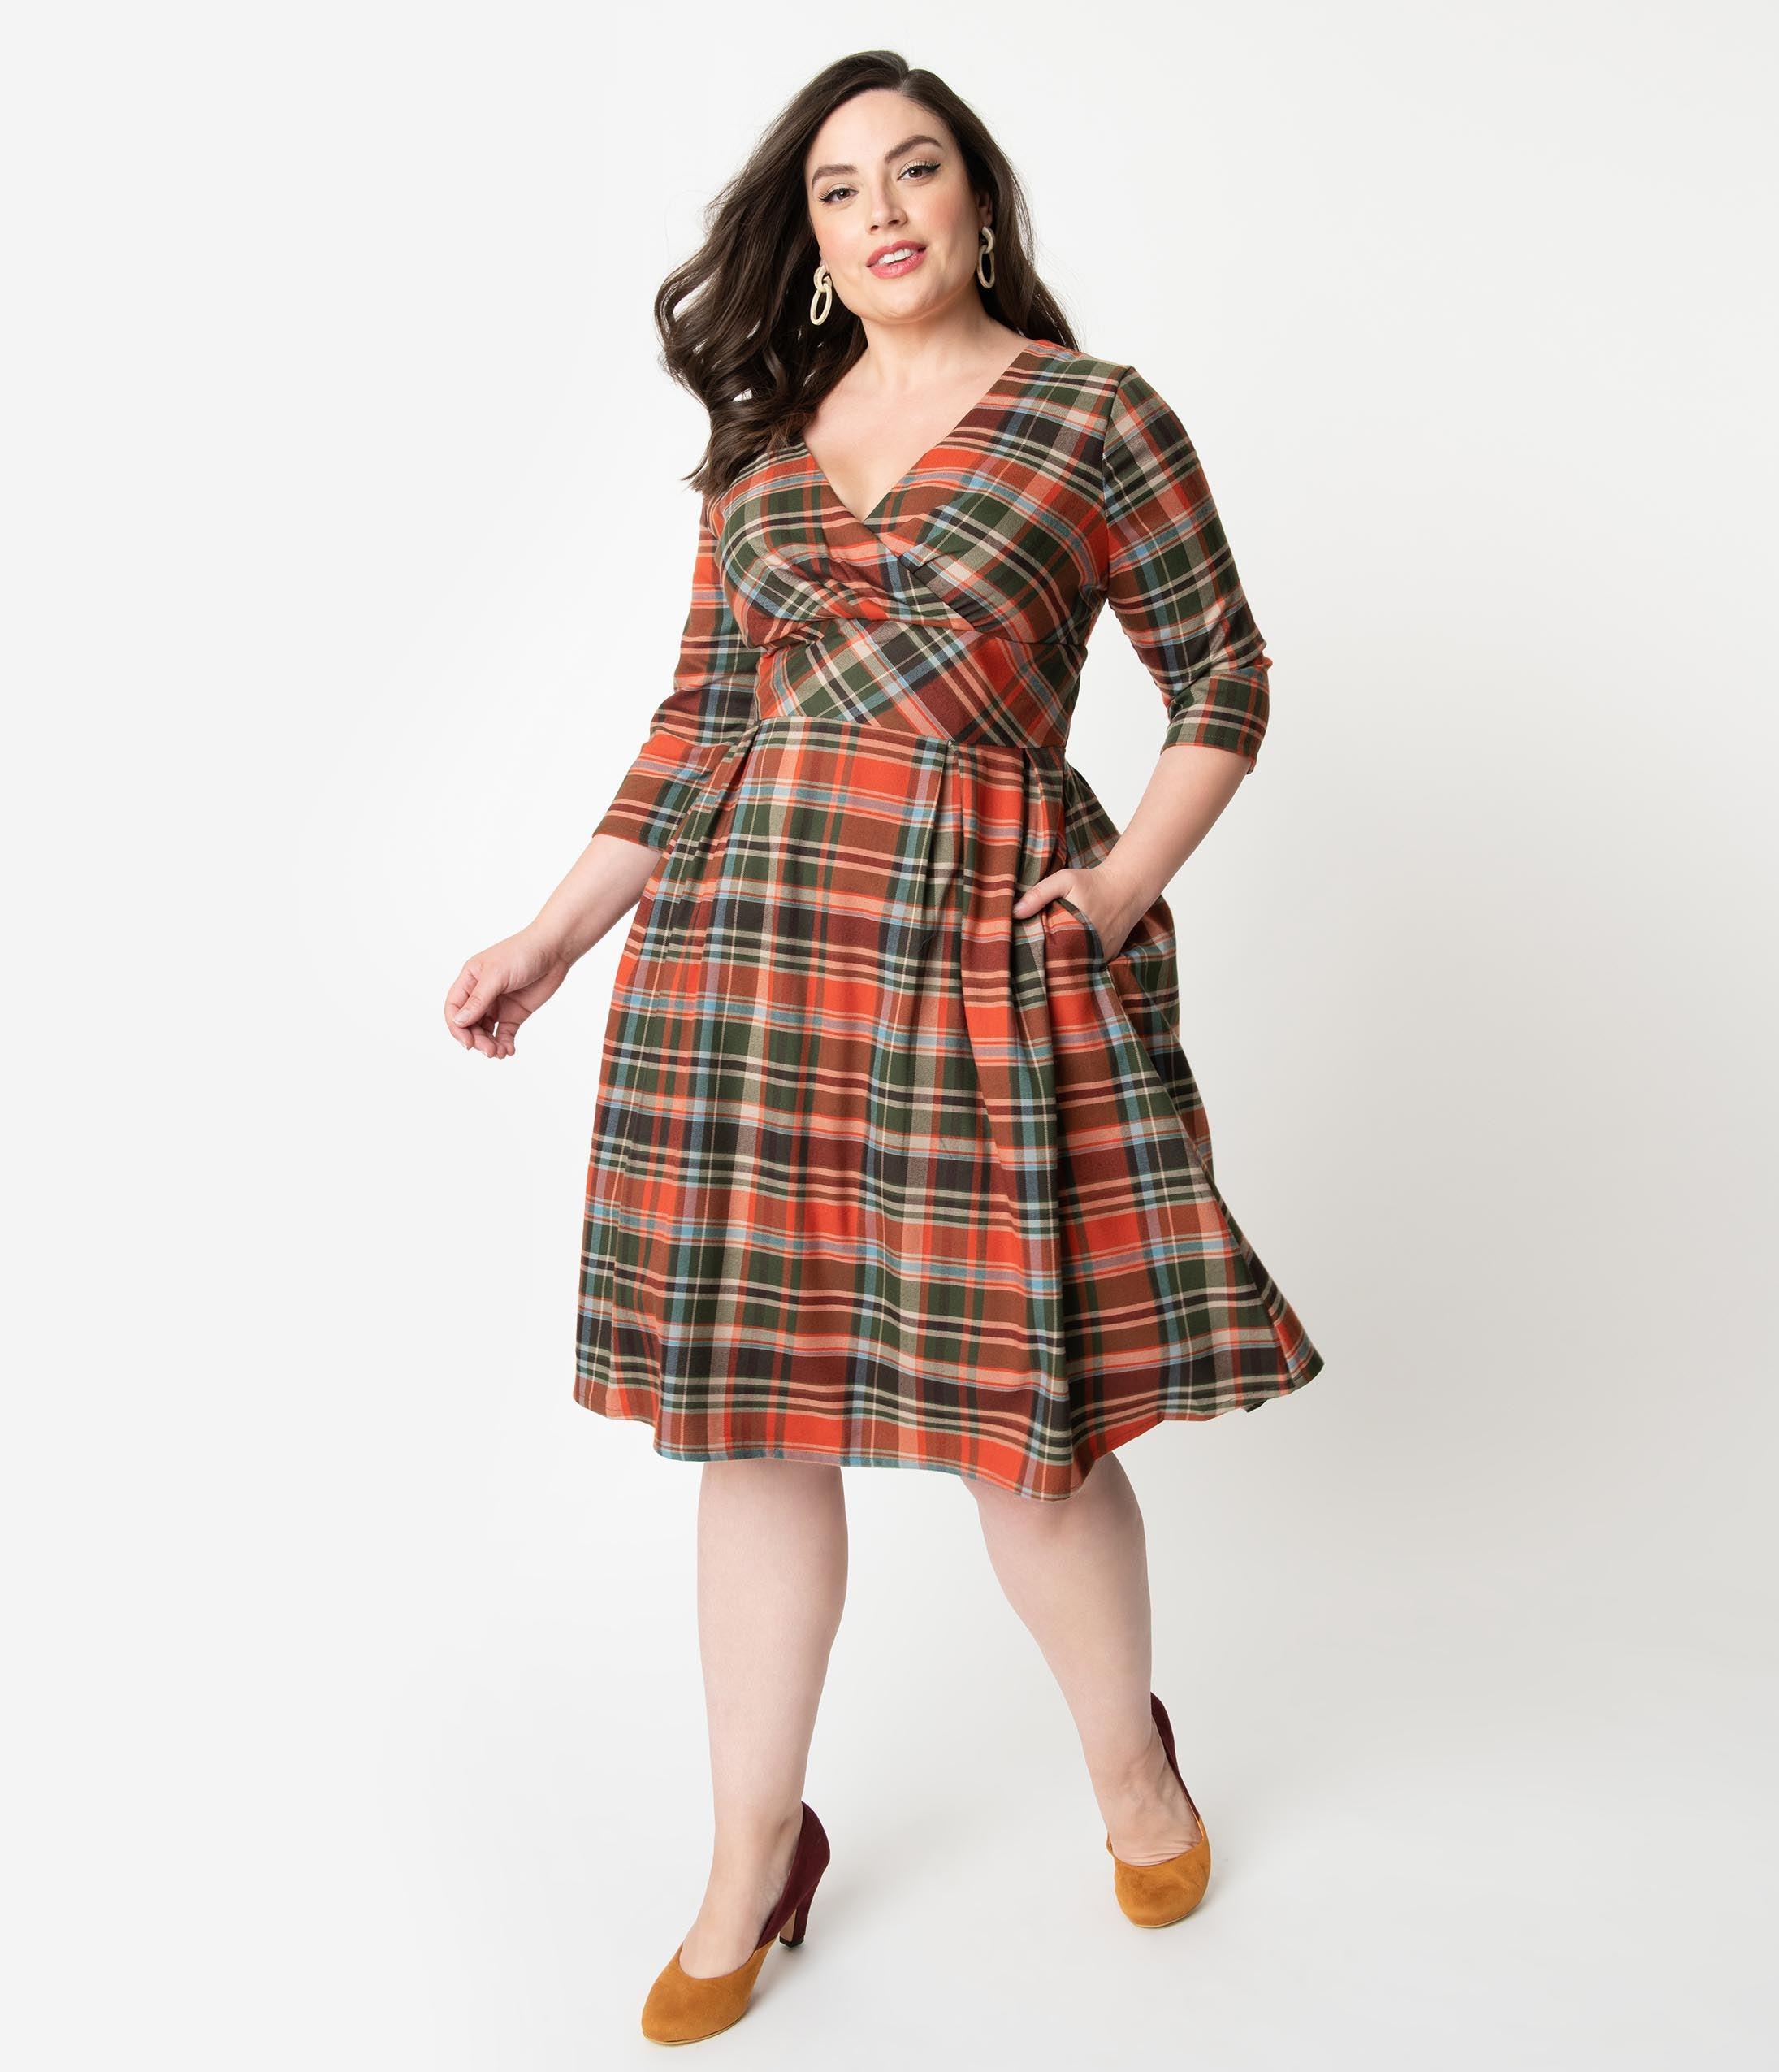 60s 70s Plus Size Dresses, Clothing, Costumes Hell Bunny Plus Size 1950S Style Orange  Green Plaid Oktober Swing Dress $102.00 AT vintagedancer.com